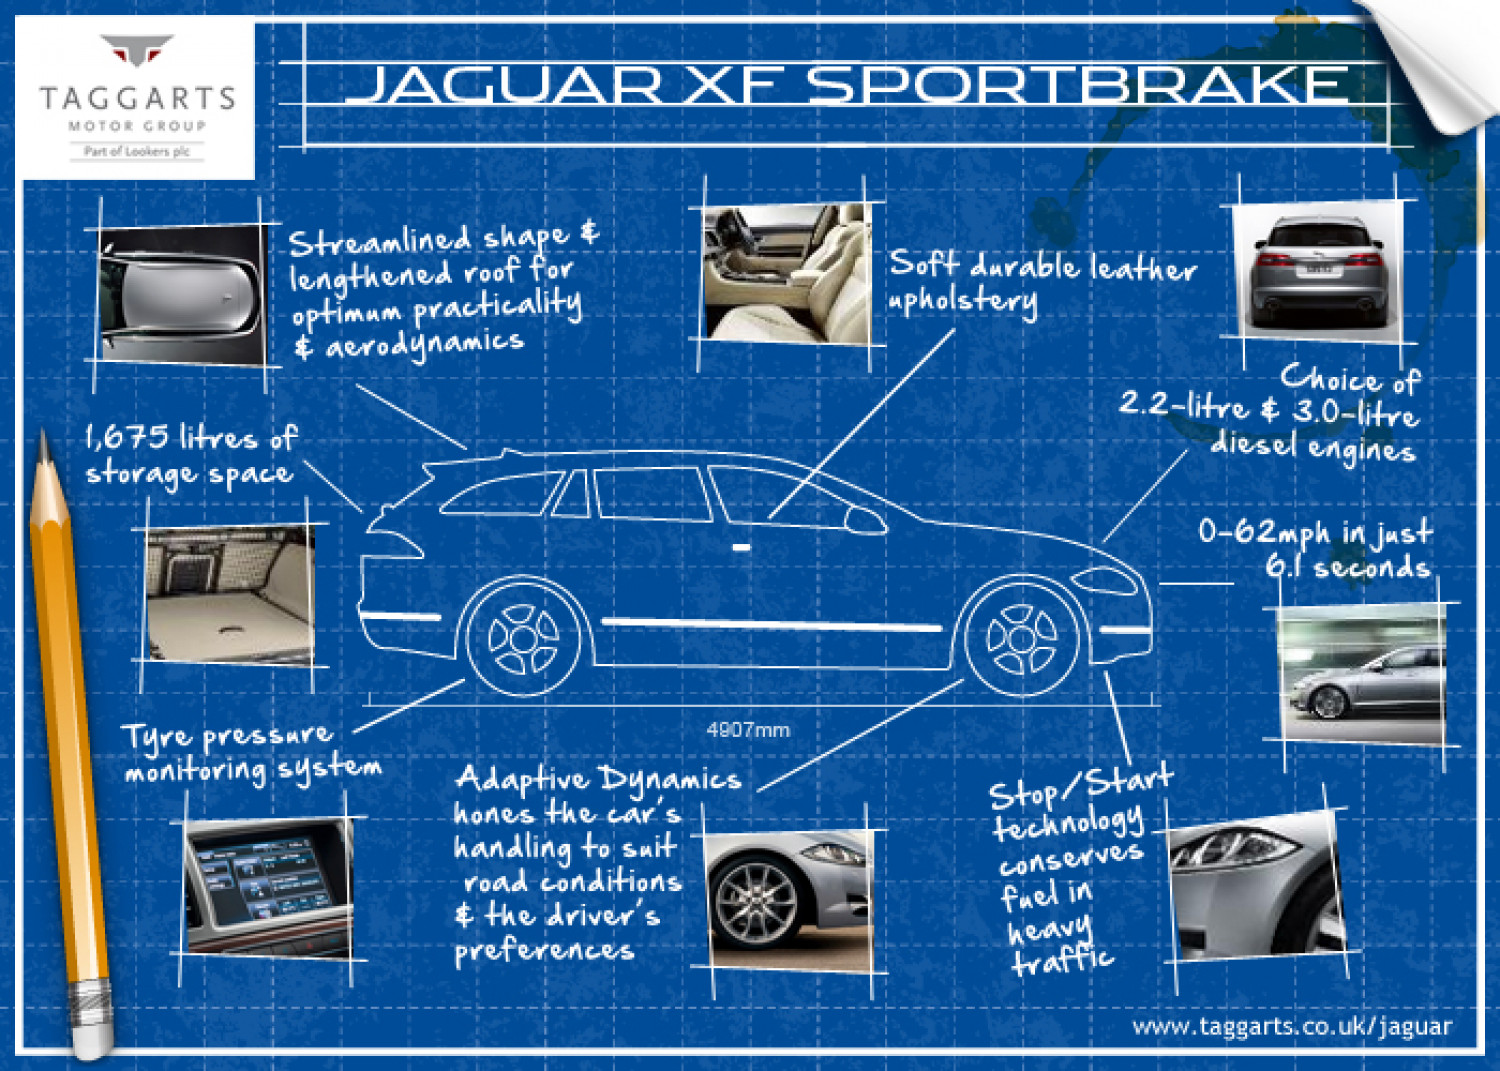 Jaguar XF Sportbrake At A Glance Infographic